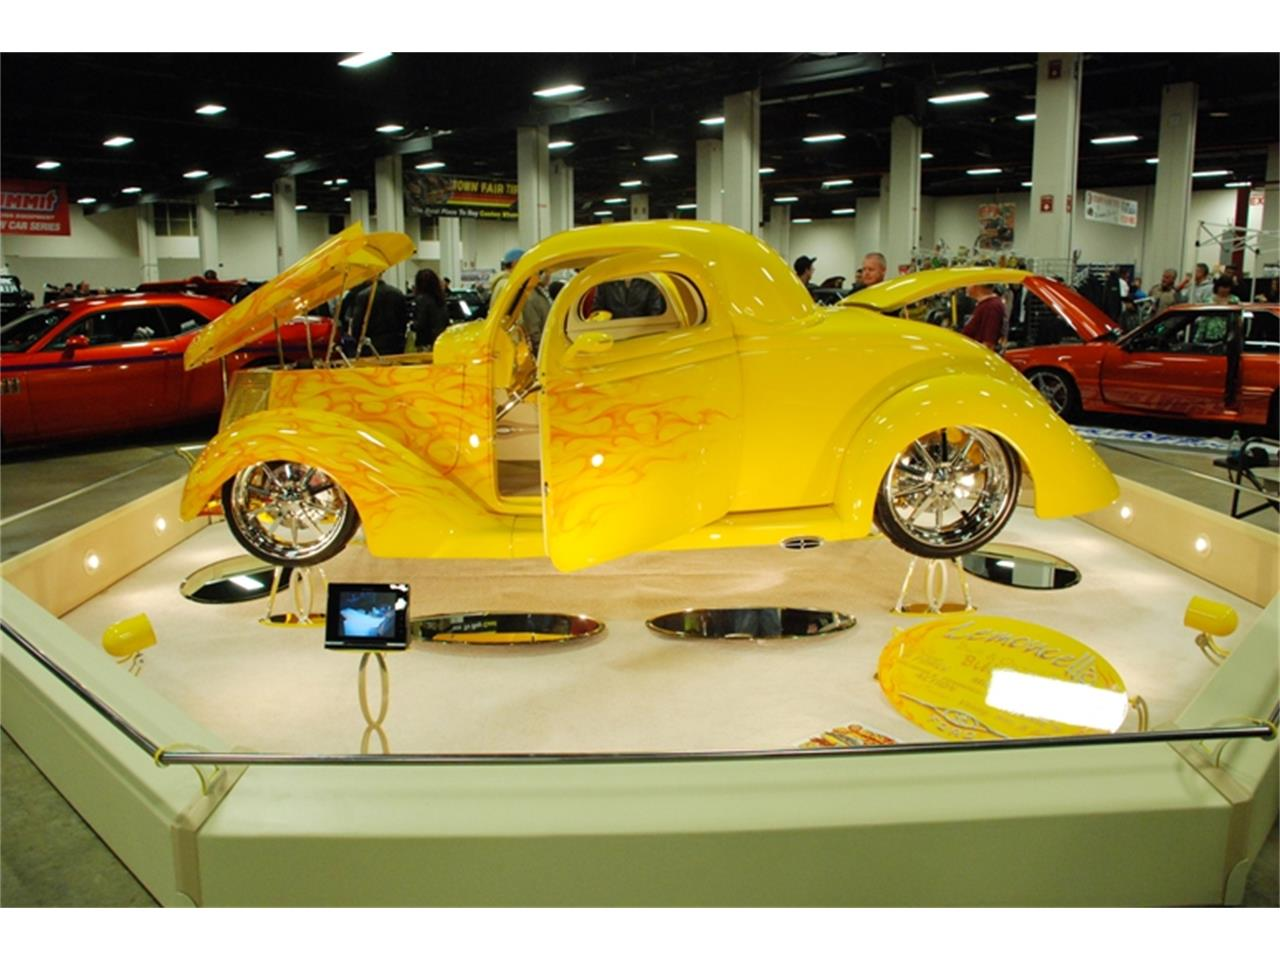 Large Picture of Classic 1936 Ford 3-Window Coupe located in California - $230,000.00 Offered by Classic Car Marketing, Inc. - JJB0